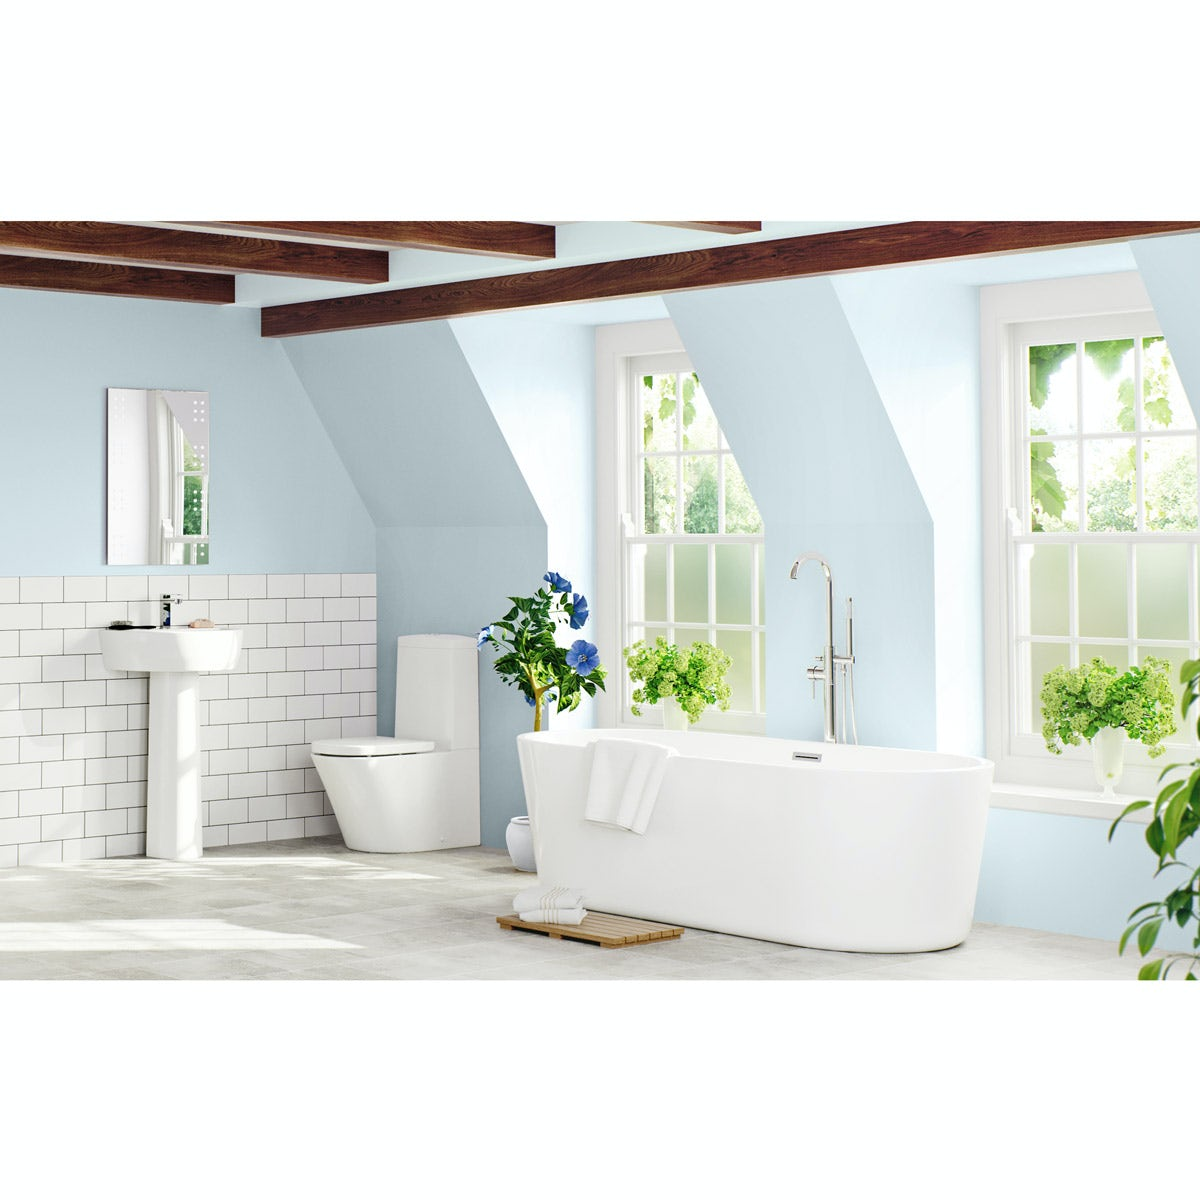 Superbe Mode Tate Luxury Bathroom Suite With Freestanding Bath